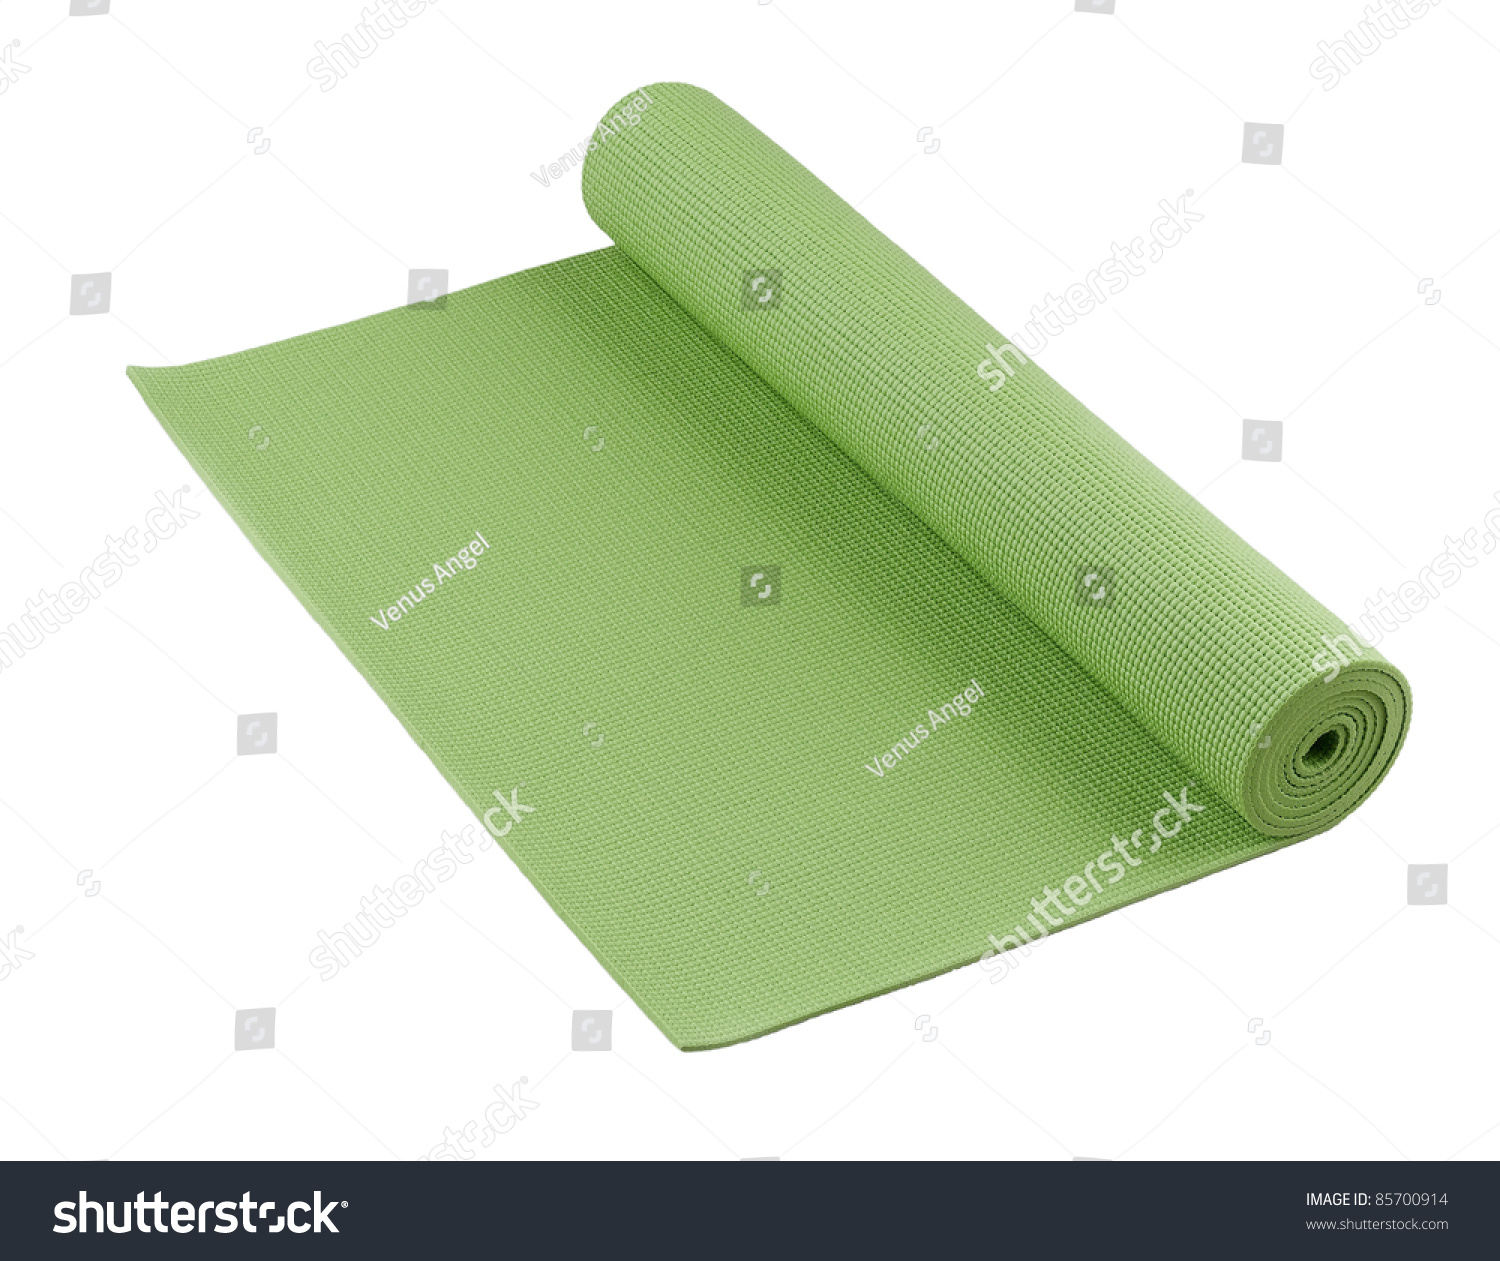 Pilates Mat Workout At Home: Green Yoga Mat Nice For Exercise At Home Or Gym Stock